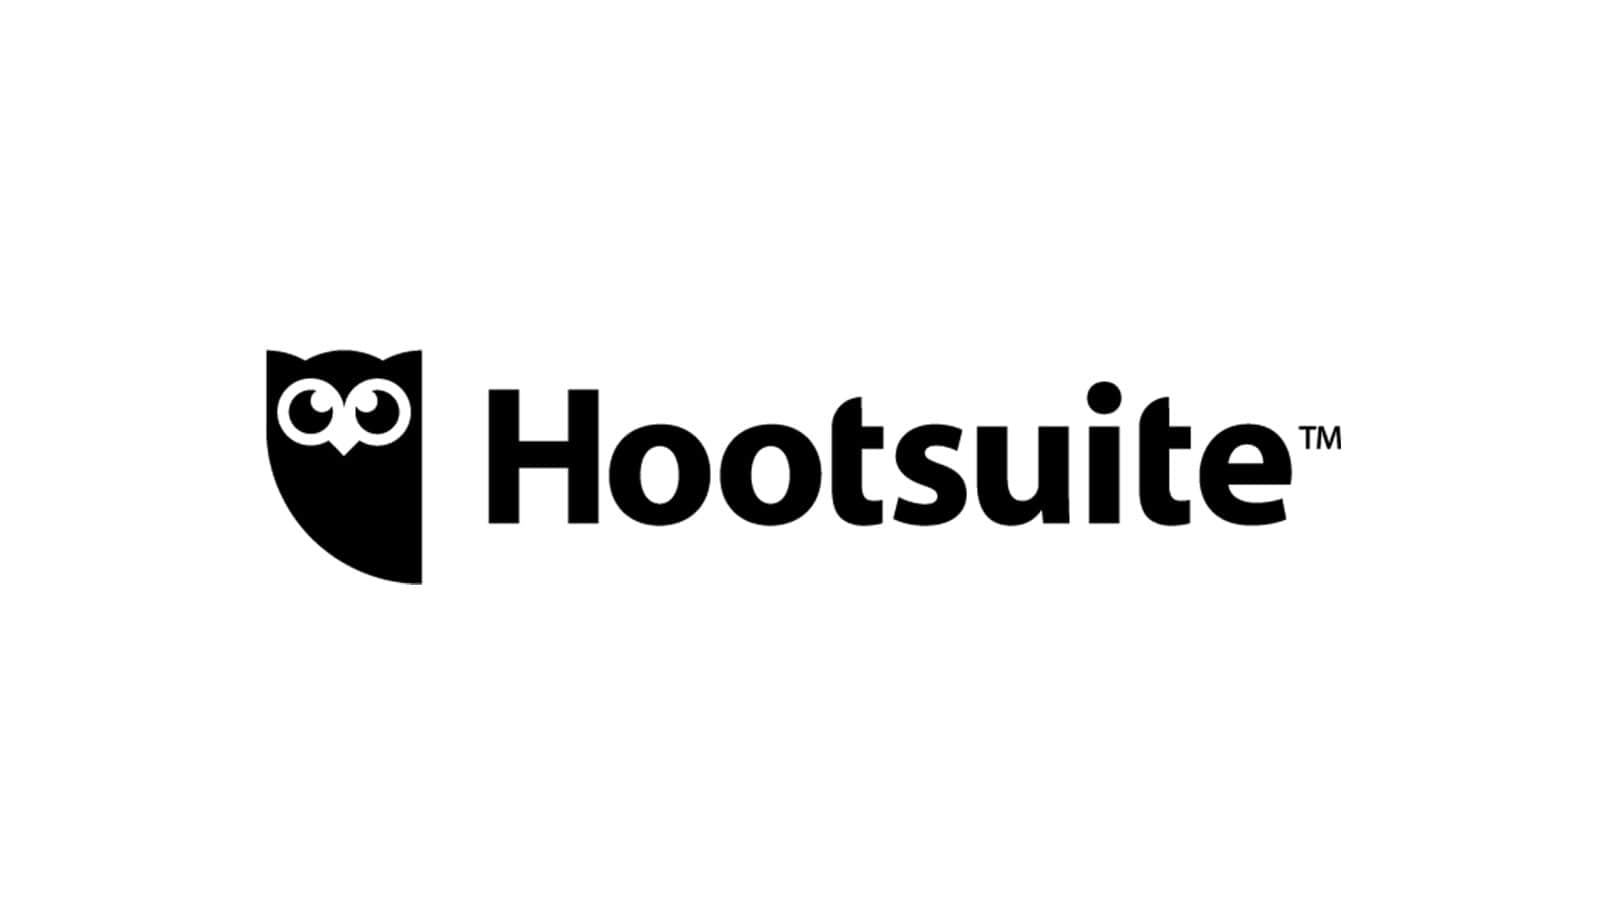 3 Pro-Tips for Using Hootsuite as a Social Media Management Tool